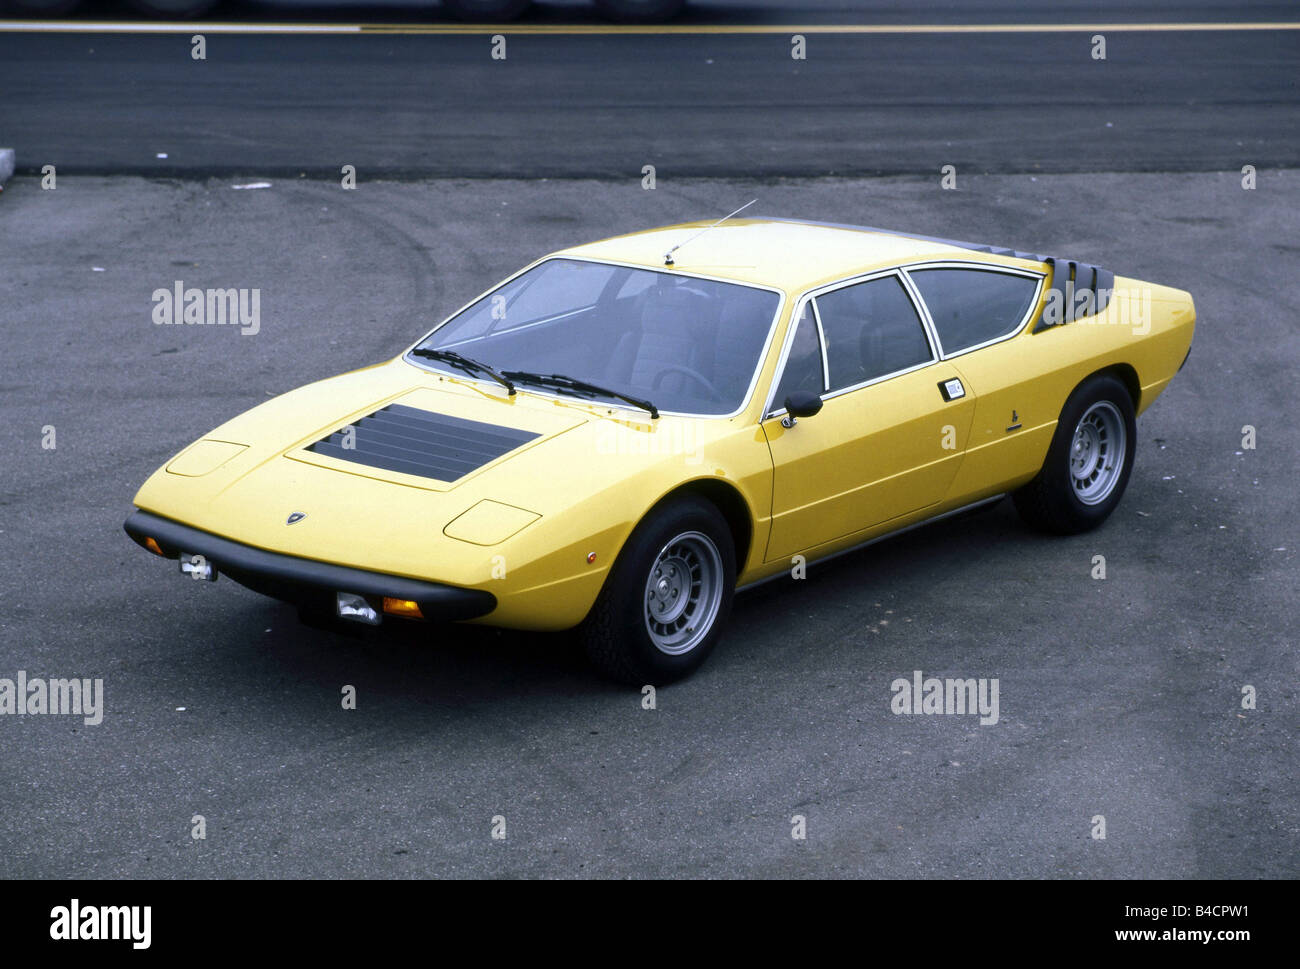 Car Lamborghini Urraco Model Year 1970 The 70s Yellow Roadster